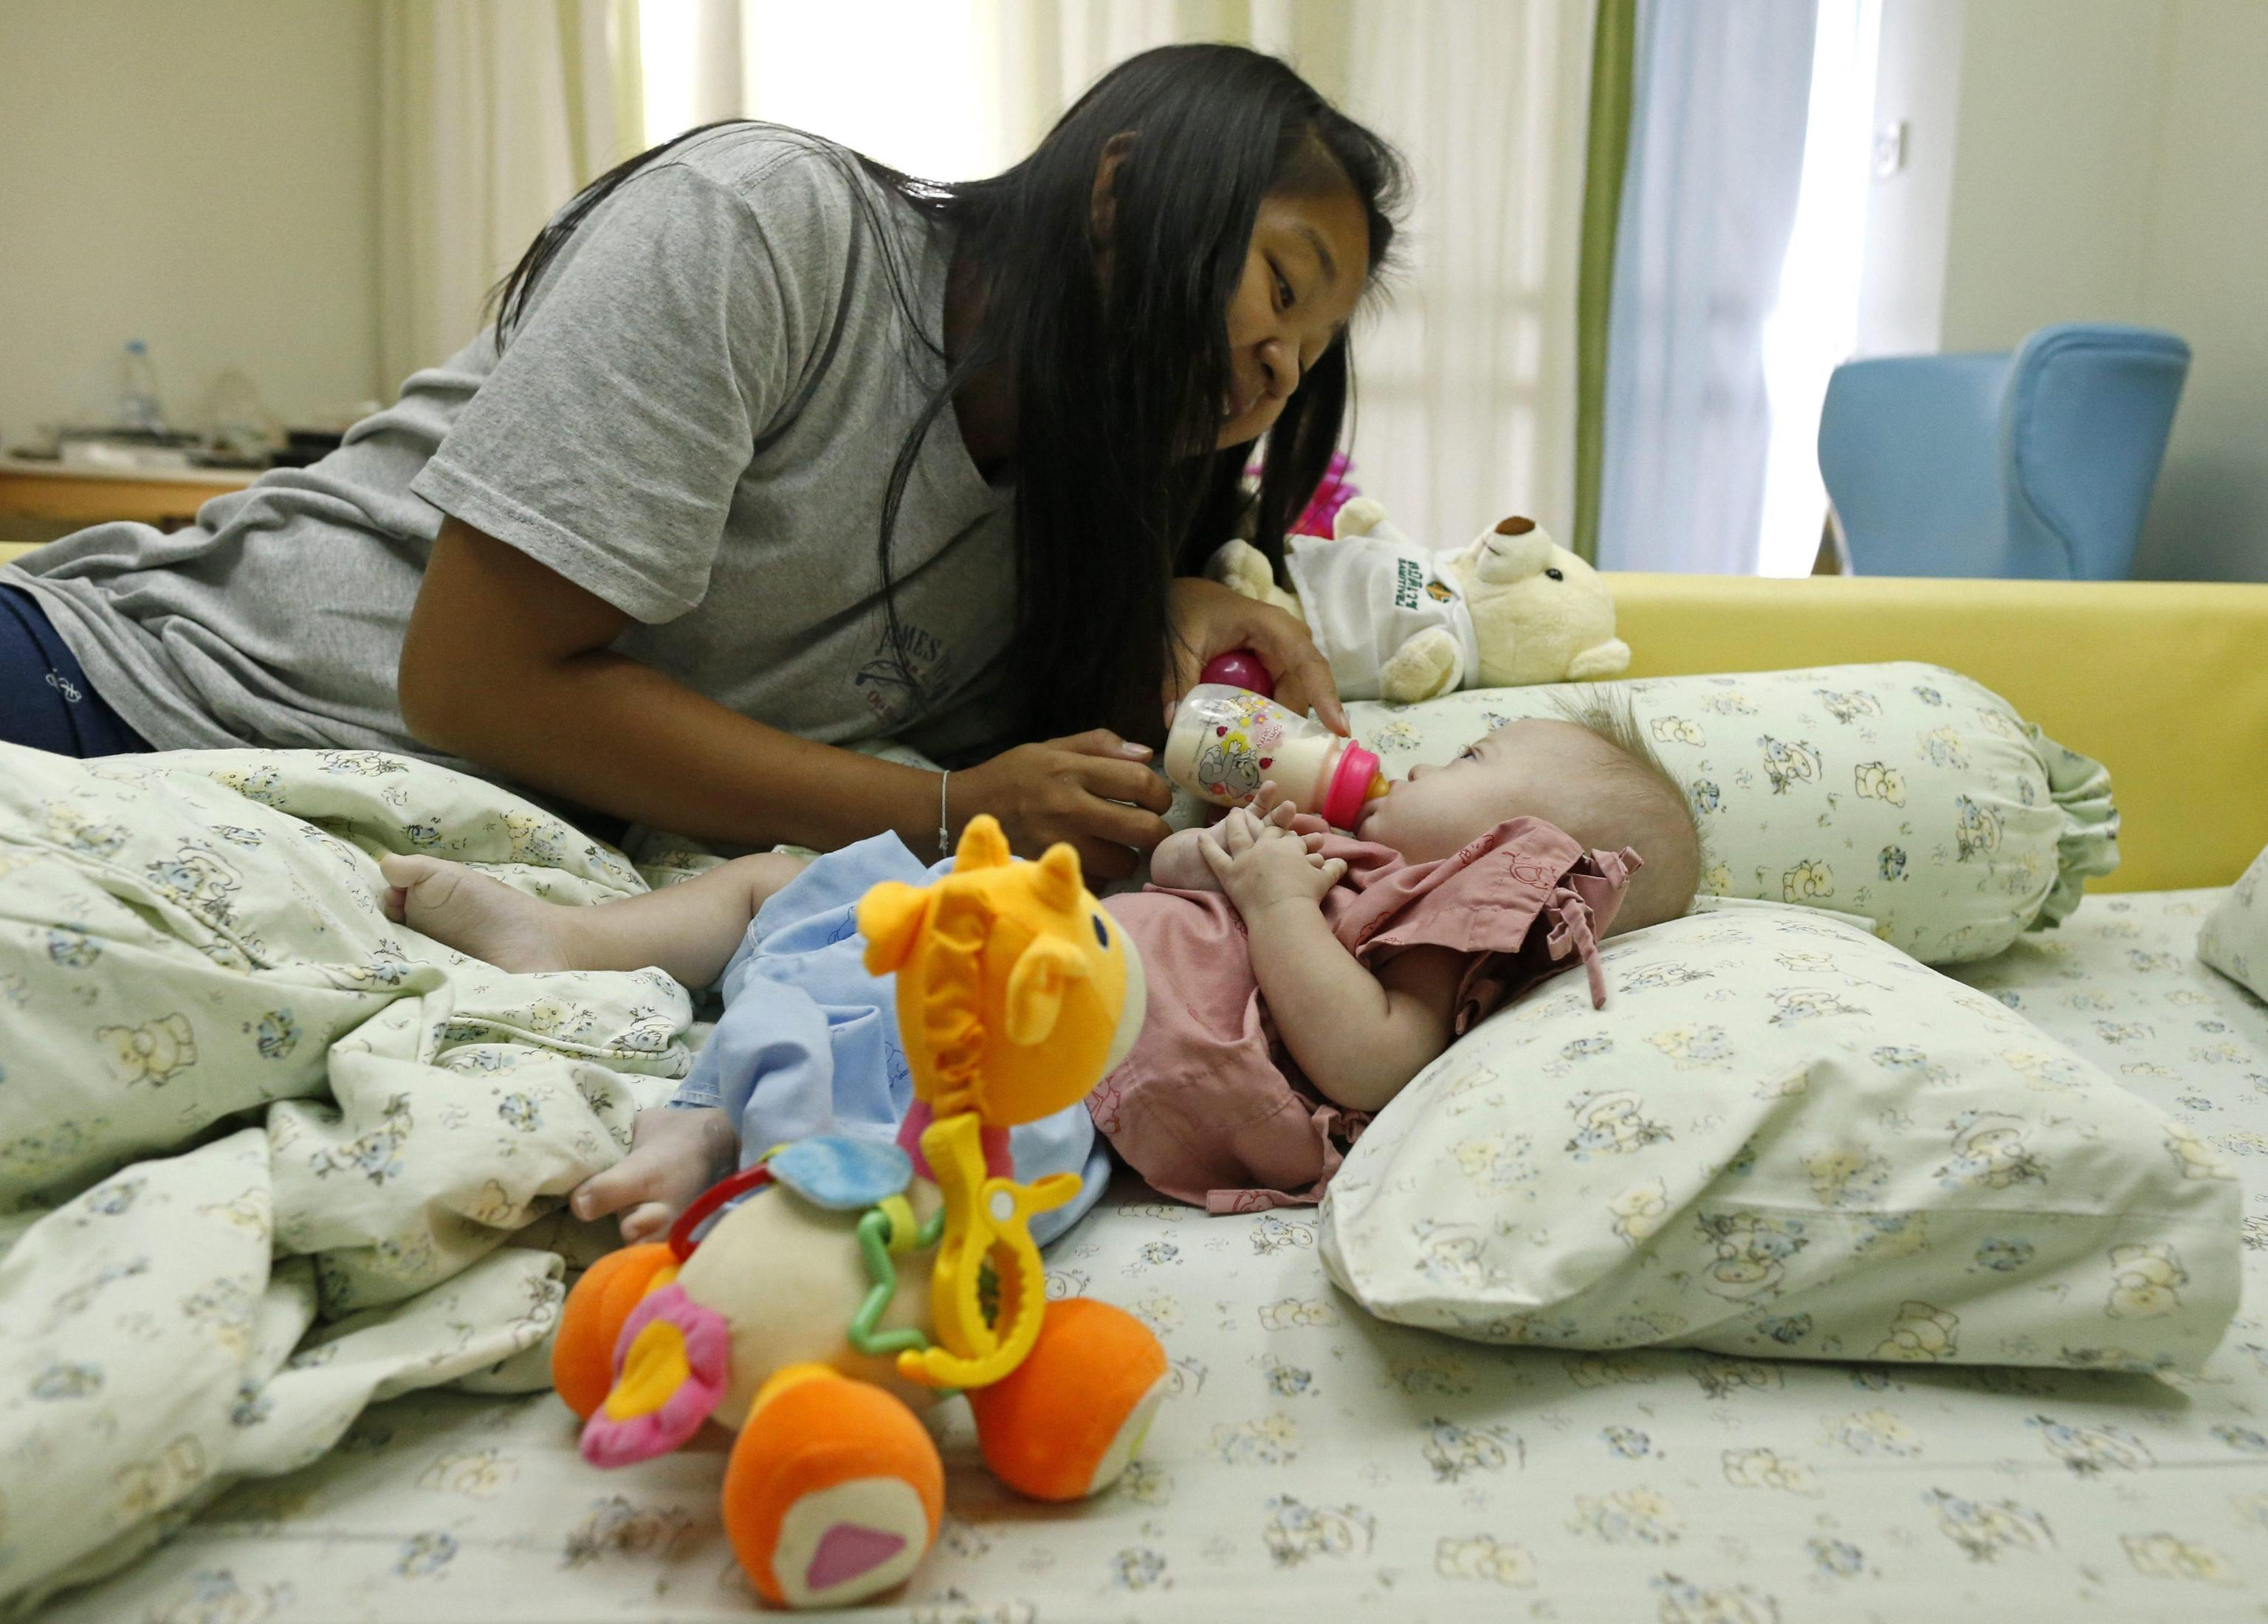 Thai surrogate mother Pattharamon Janbua with her seven-month-old Down's Syndrome baby